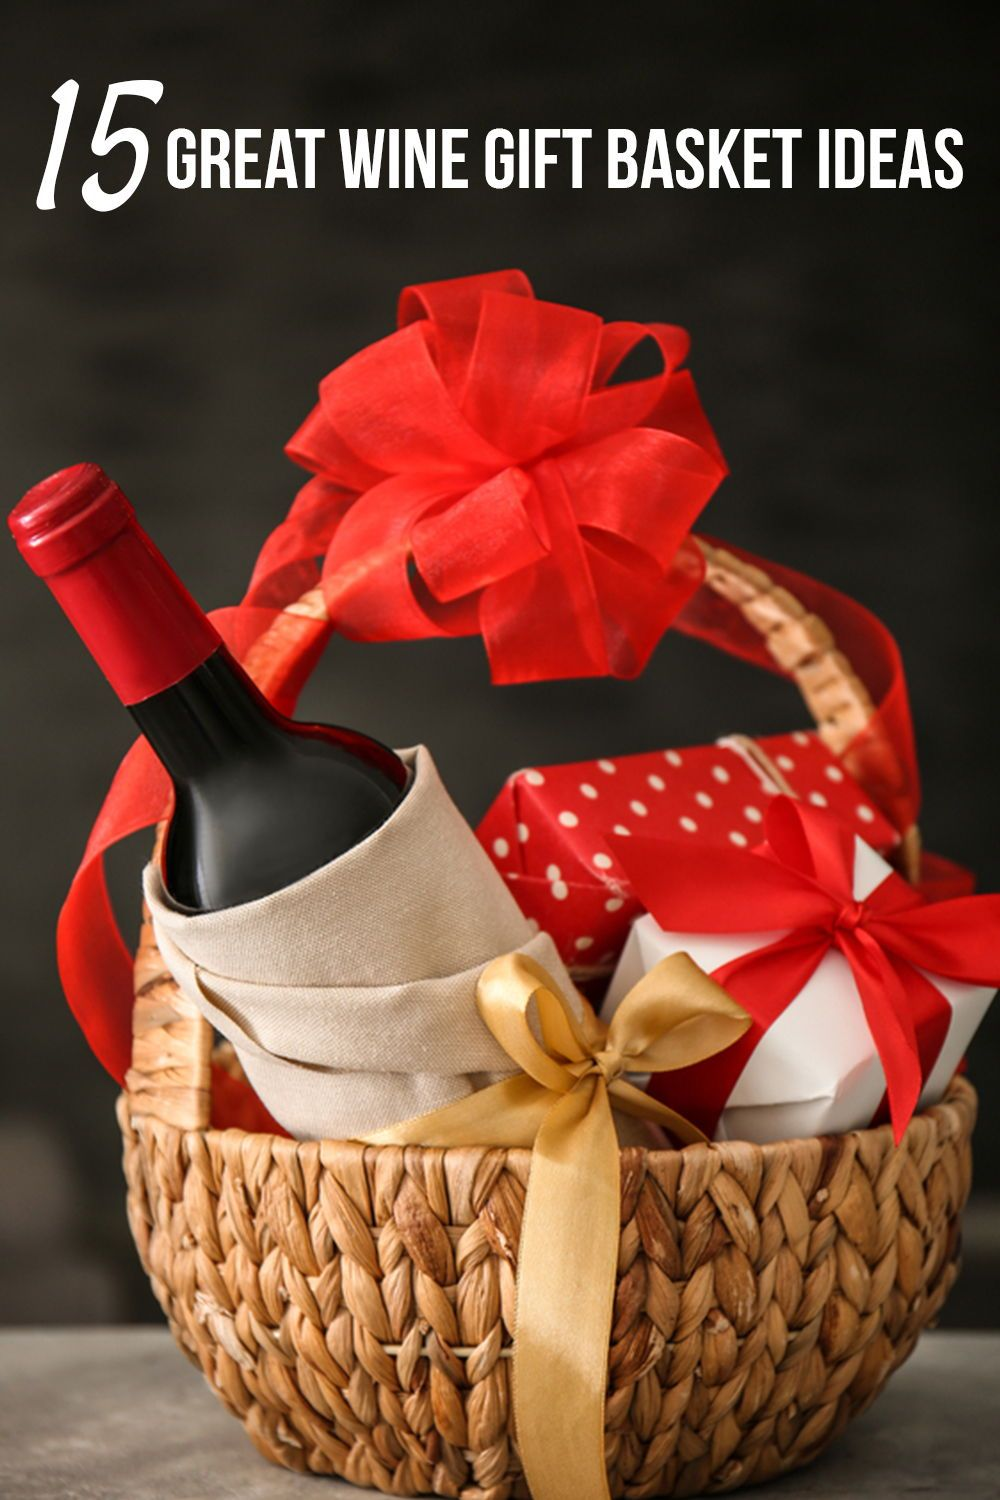 15 Great Wine Gift Basket Ideas In 2019 Grills Forever Red Wine Gift Basket Wine Gifts Wine Gift Baskets